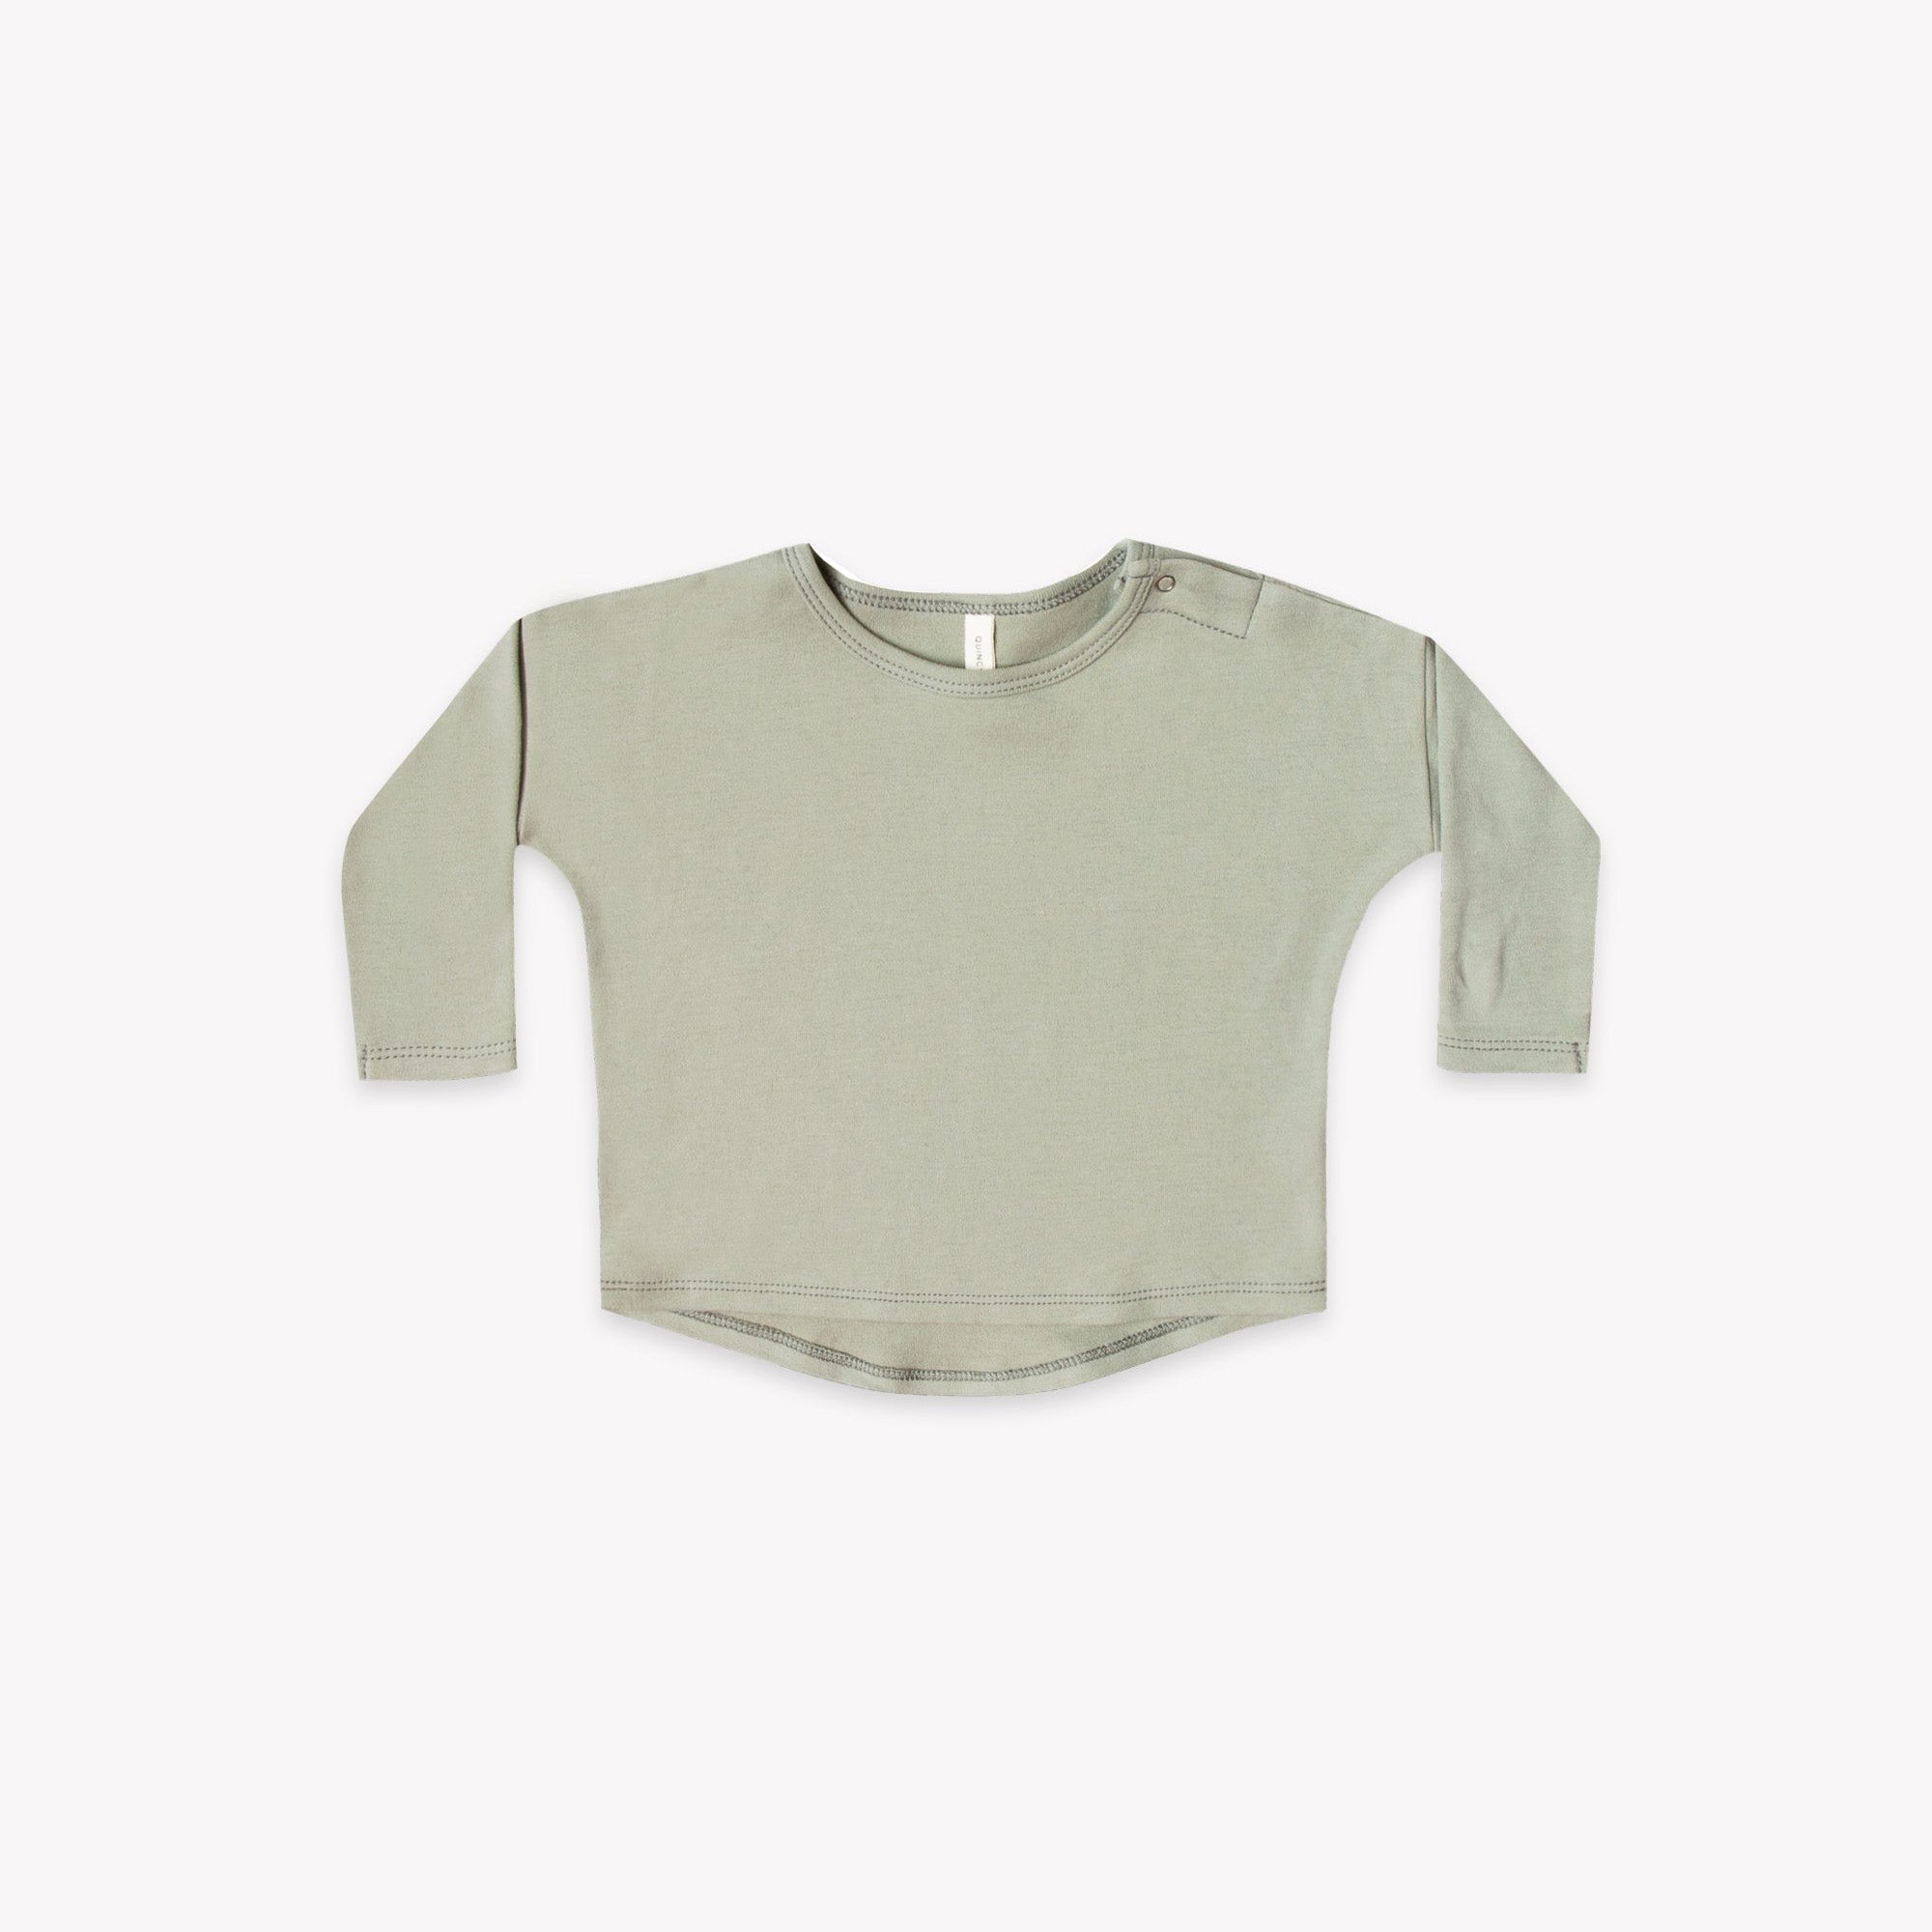 Quincy Mae - Longsleeve Baby Tee (Sage) - Only 0/3 & 3/6